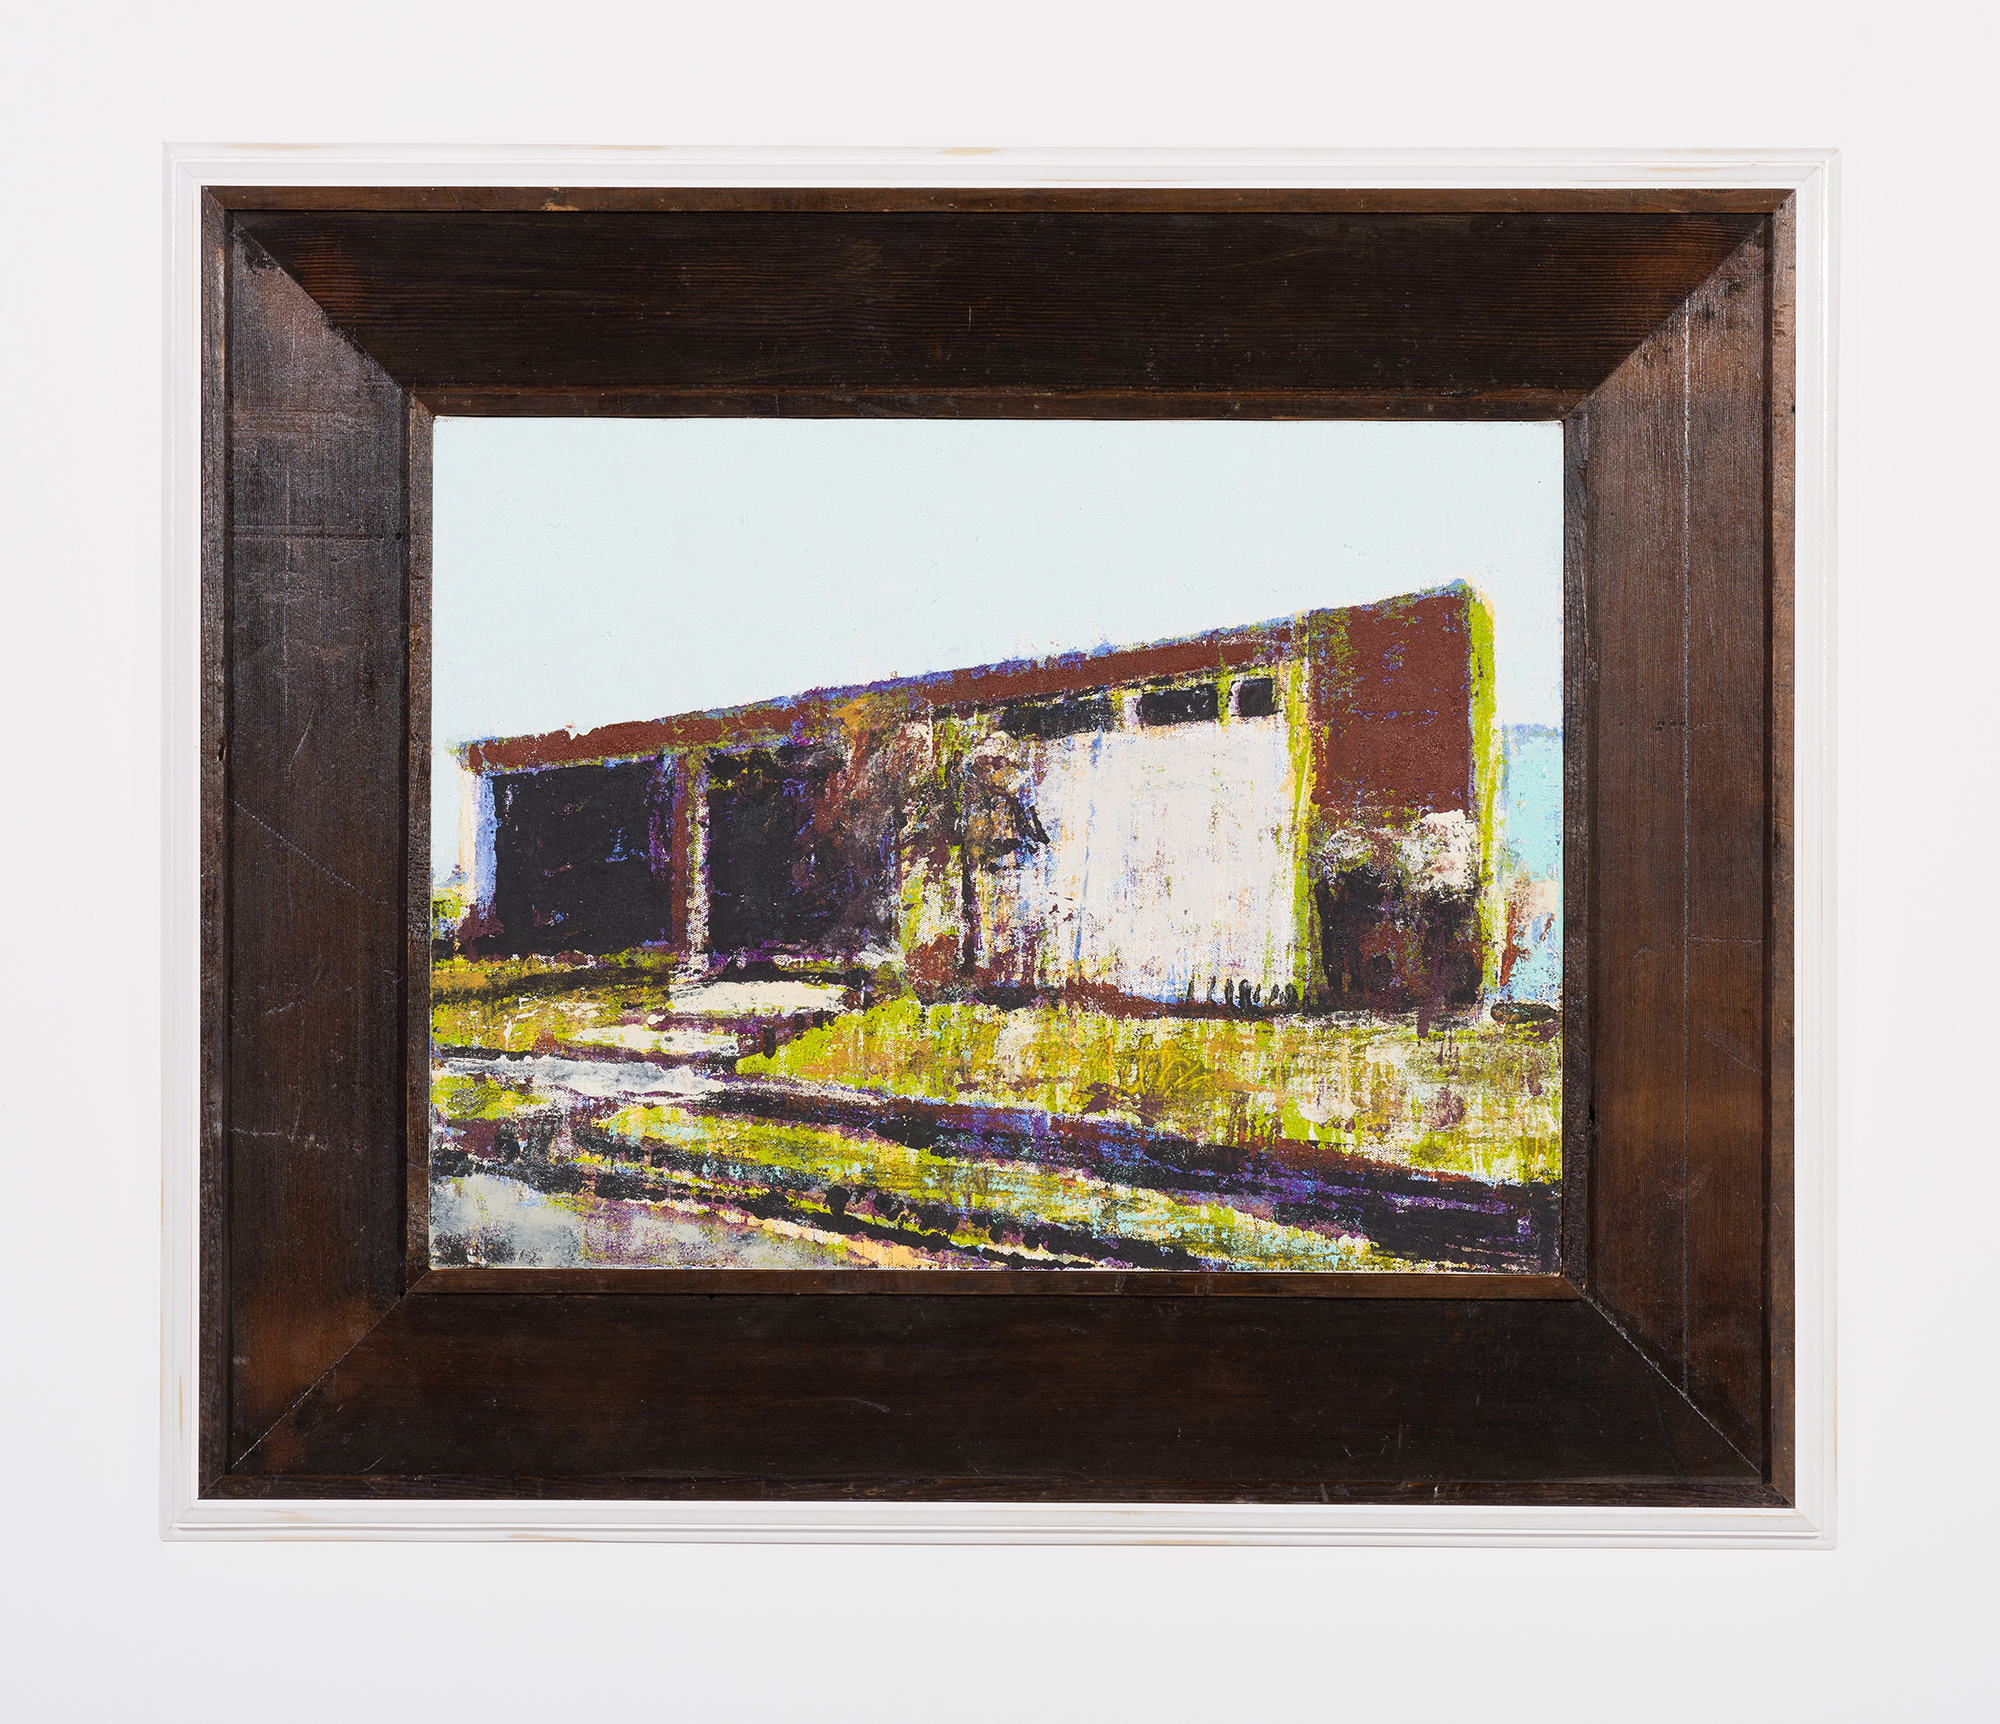 Enoc Perez and Carlos/Rolón Dzine, Rio Piedras, Puerto Rico, 2015, Oil on canvas with customized reclaimed wood frame with metal, 18 x 24 inches (unframed)